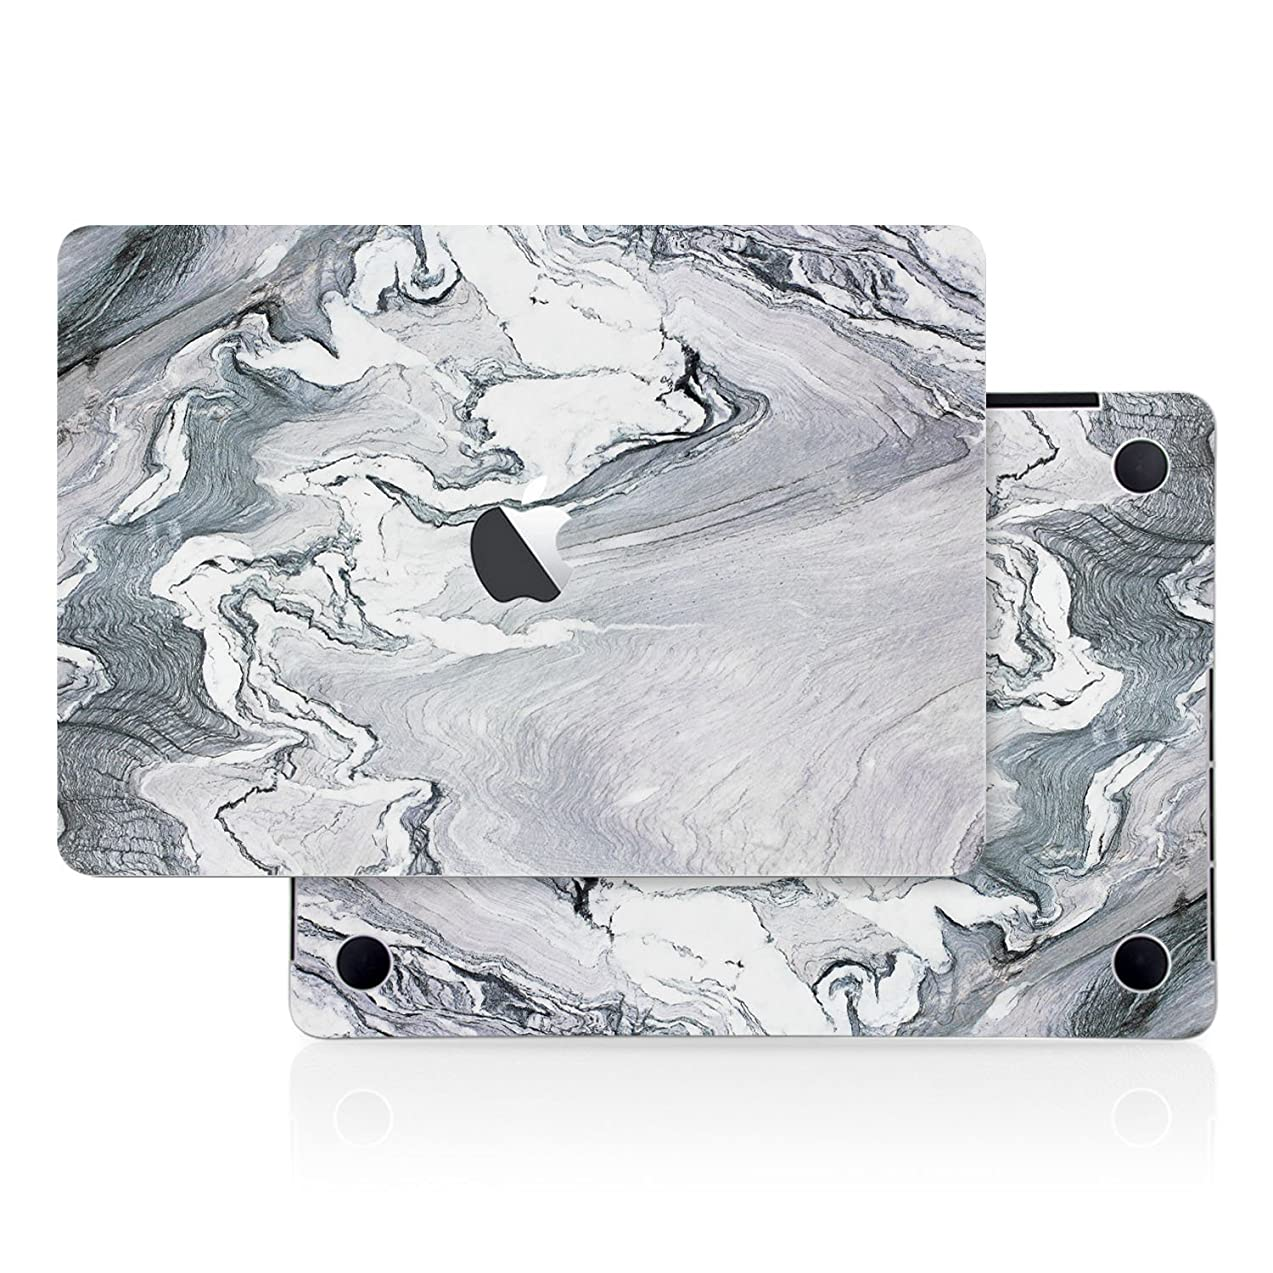 Silver Gray Marble Stone Texture Skin Decal (4-in-1) Full-Size 360° Protector Cover Apple MacBook Pro 15 Inch A1707 A1900 (2016 2017 2018 2019 Model with & w/o Touch Bar & ID) Black Keyboard Cover